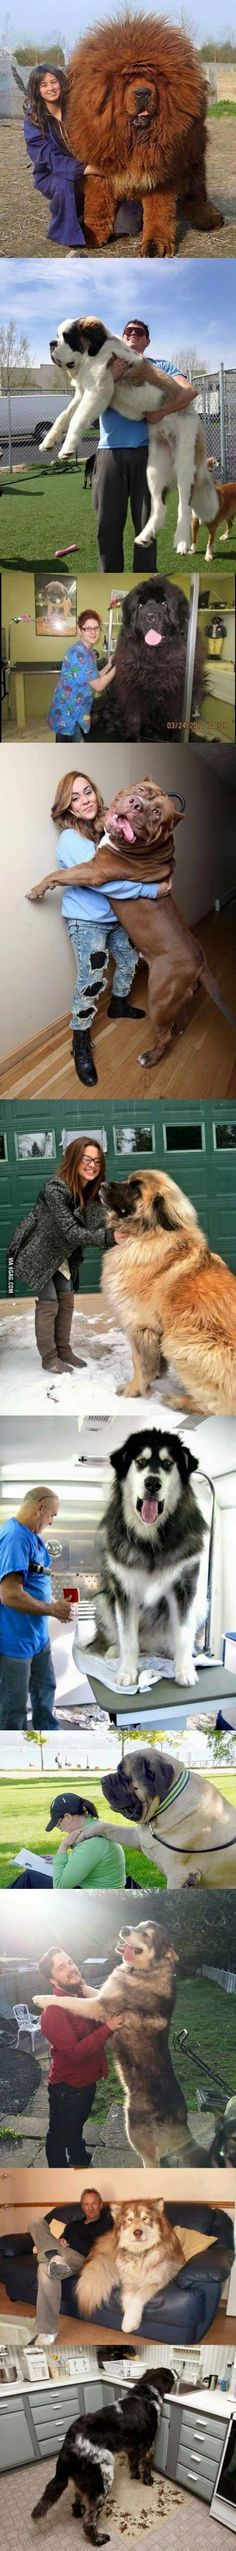 These are the biggest dogs in the world - Tiere - Perros Cute Funny Animals, Funny Animal Pictures, Cute Baby Animals, Dog Pictures, Funny Dogs, Animals And Pets, Funny Fails, Huge Dogs, Giant Dogs